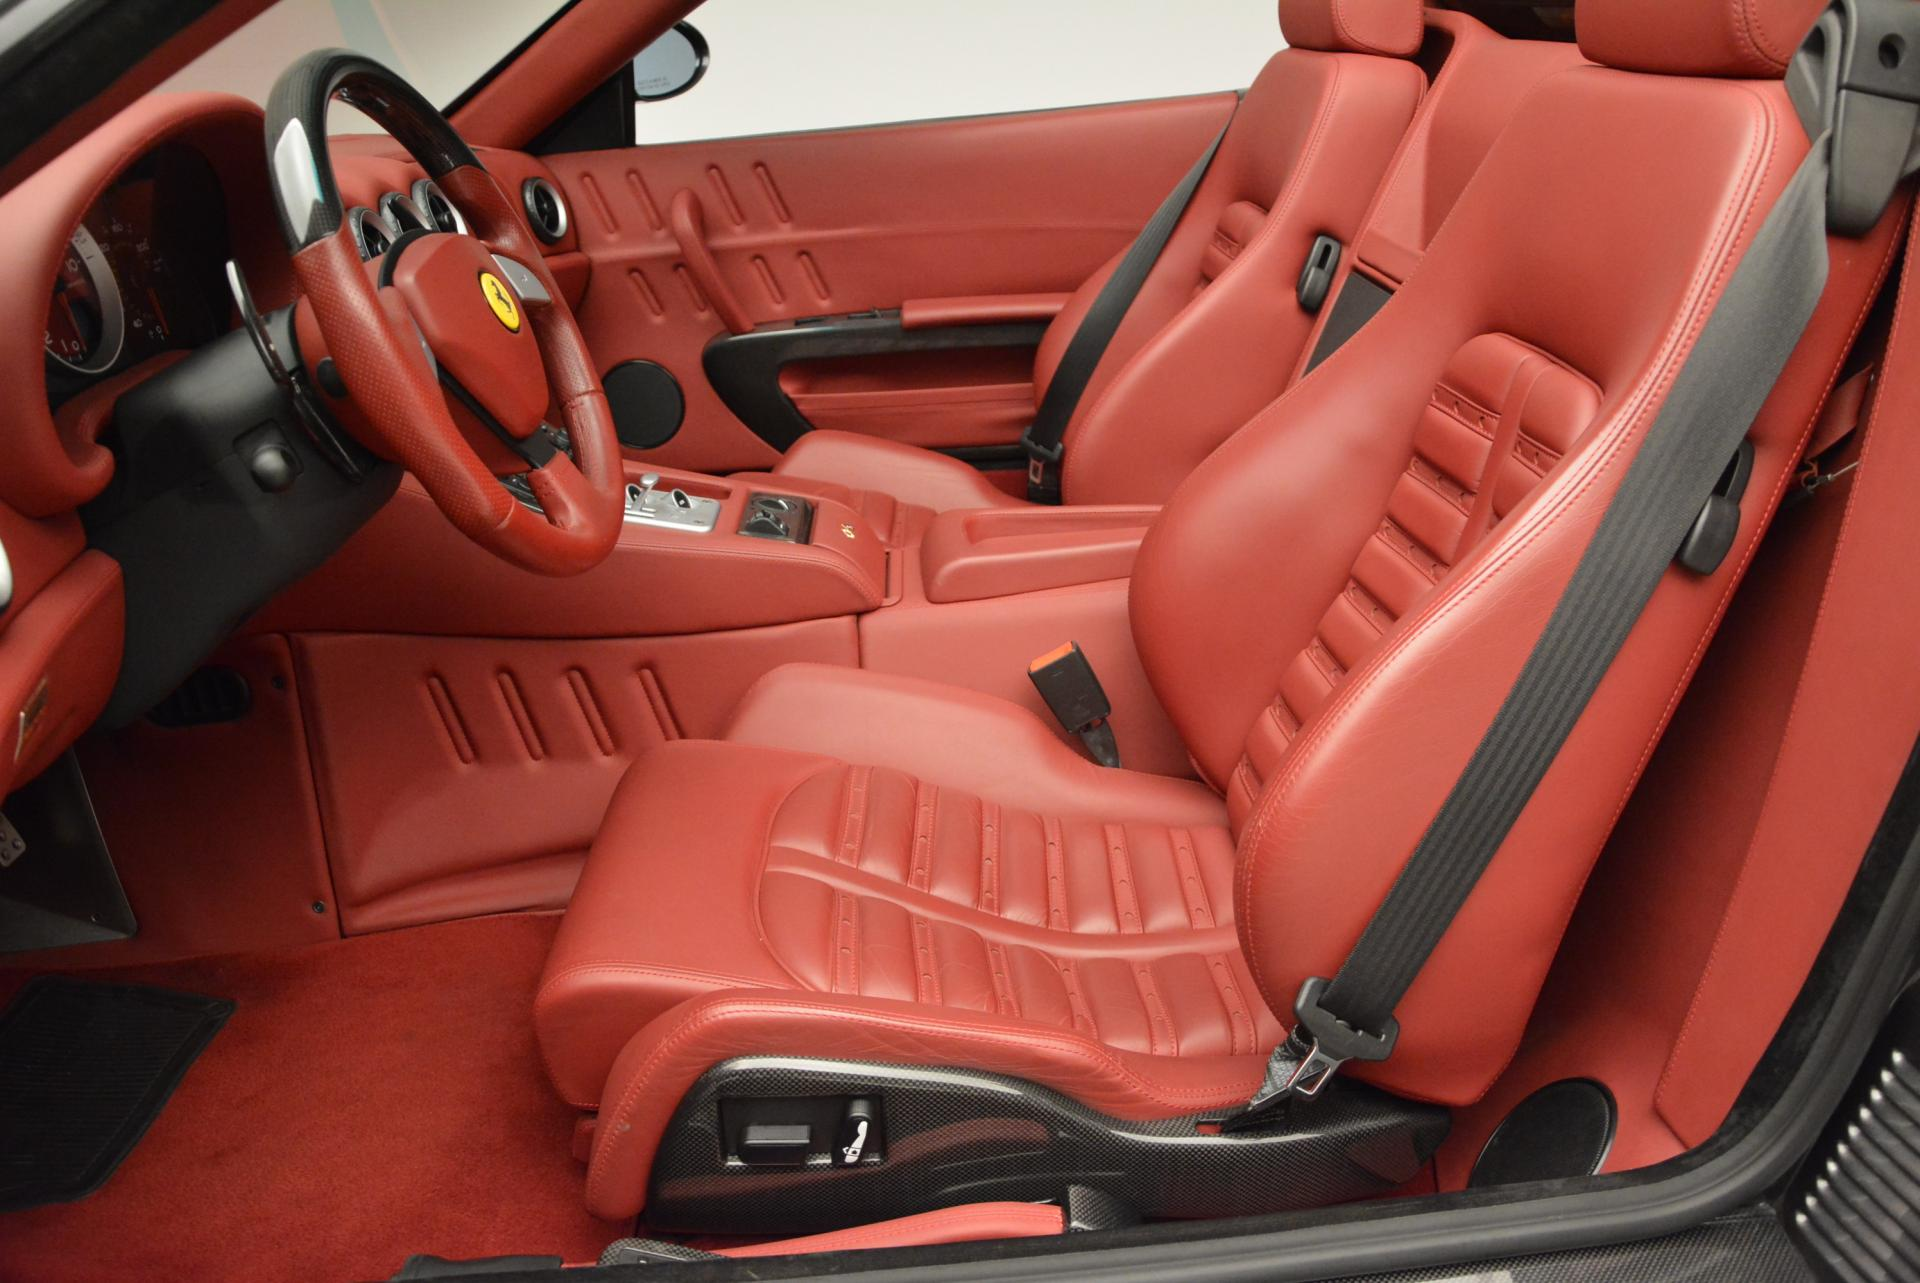 Used 2005 Ferrari Superamerica  For Sale In Greenwich, CT. Alfa Romeo of Greenwich, 4306 125_p26